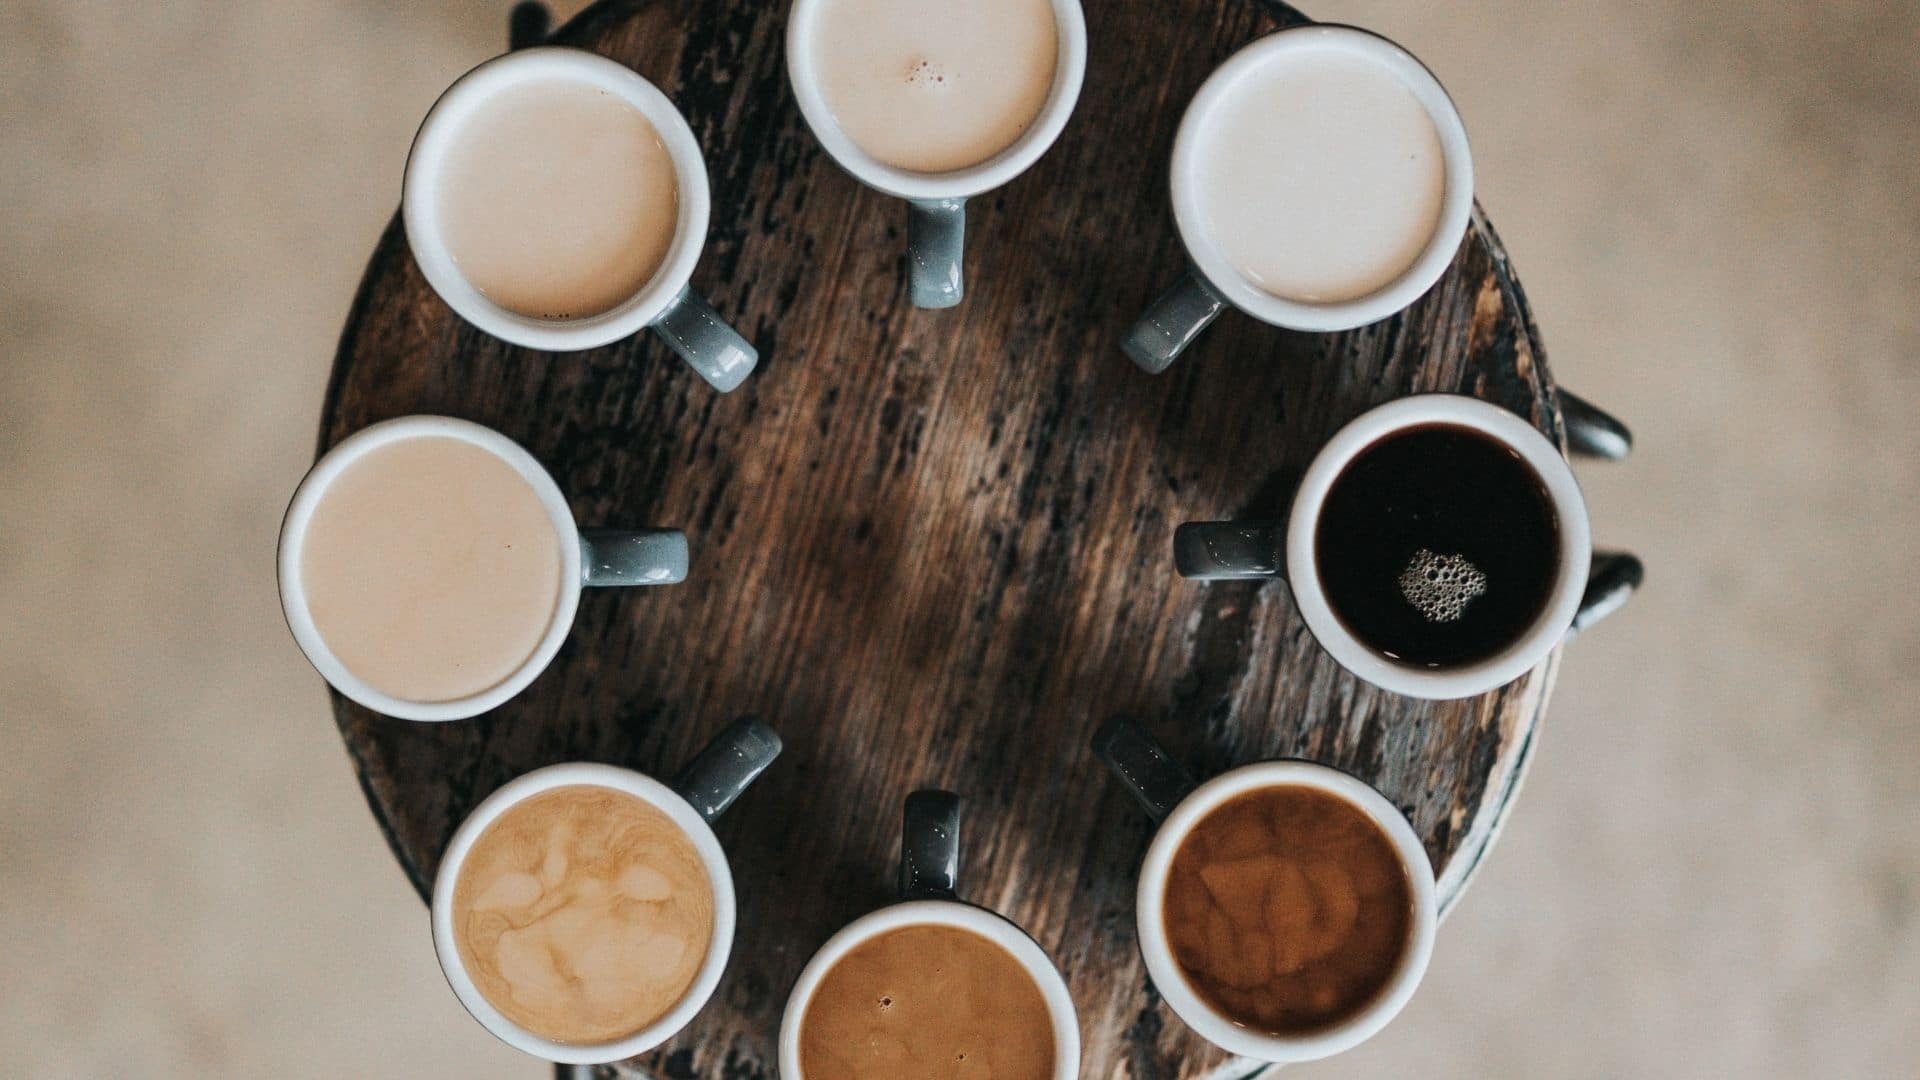 Choice of different types of coffee on a tray.